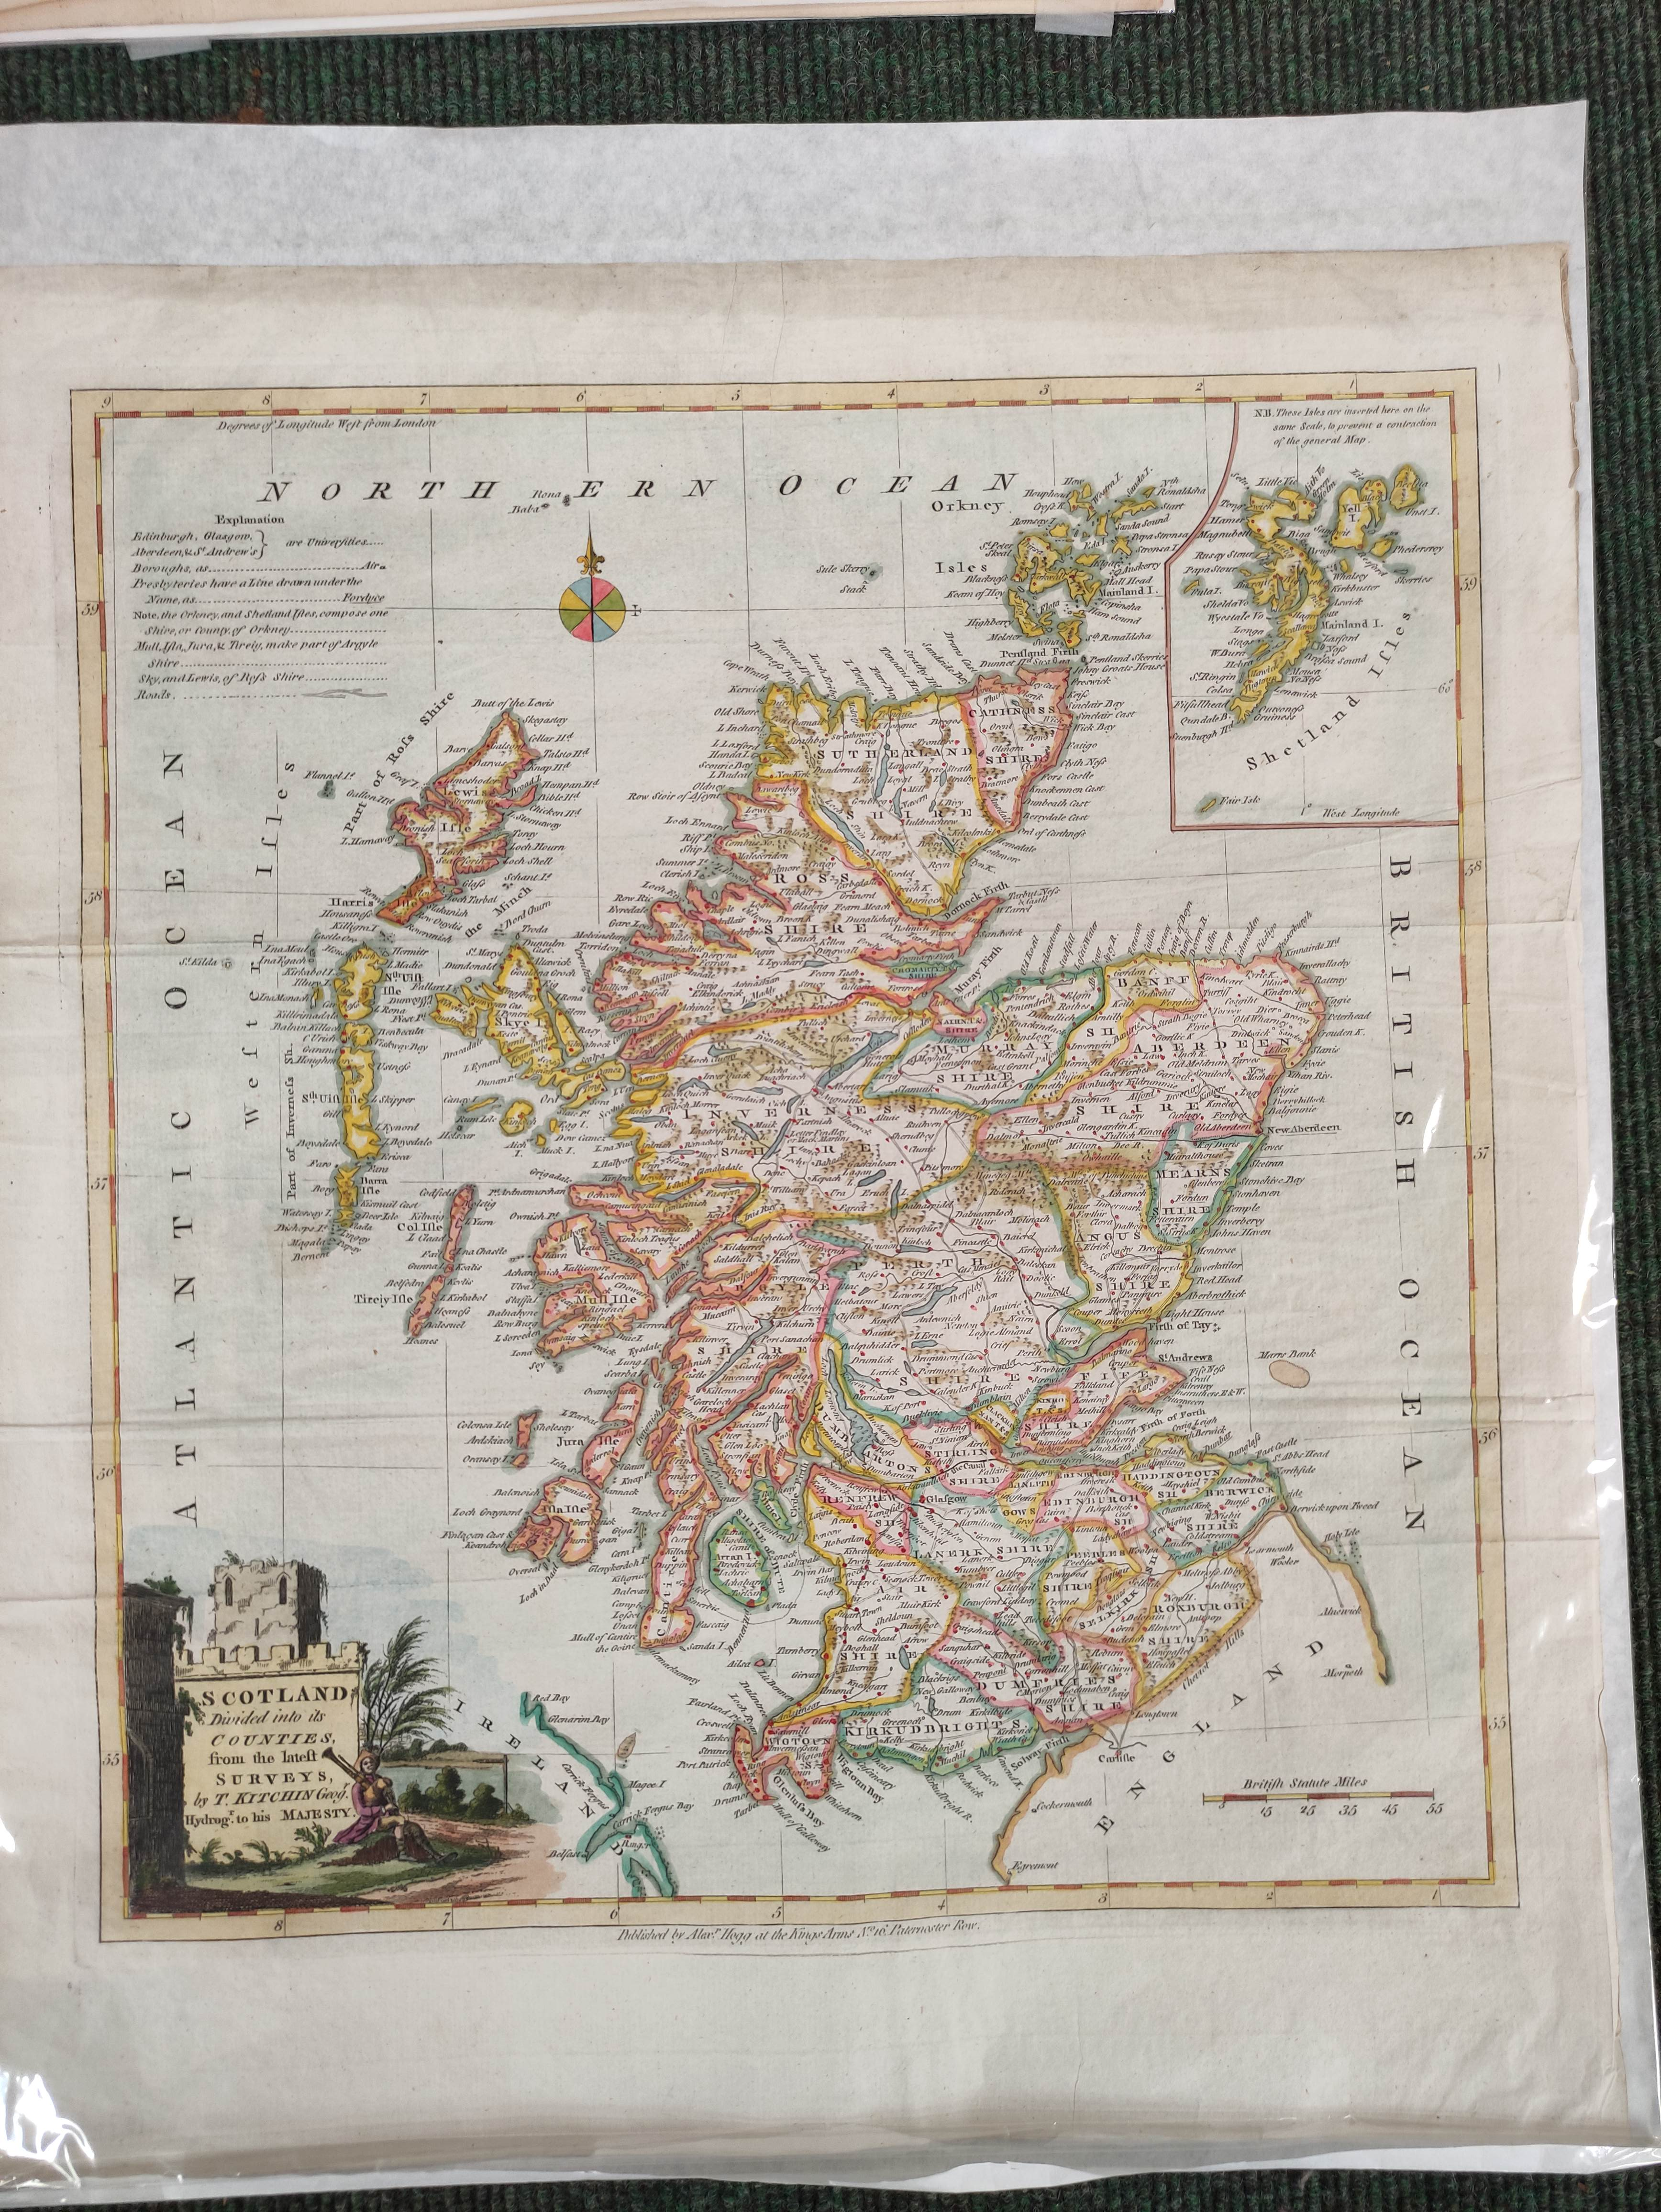 Engraved Maps.2 hand coloured eng. double maps of Ireland & Scotland by S. Augustus Mitchell, - Image 5 of 7